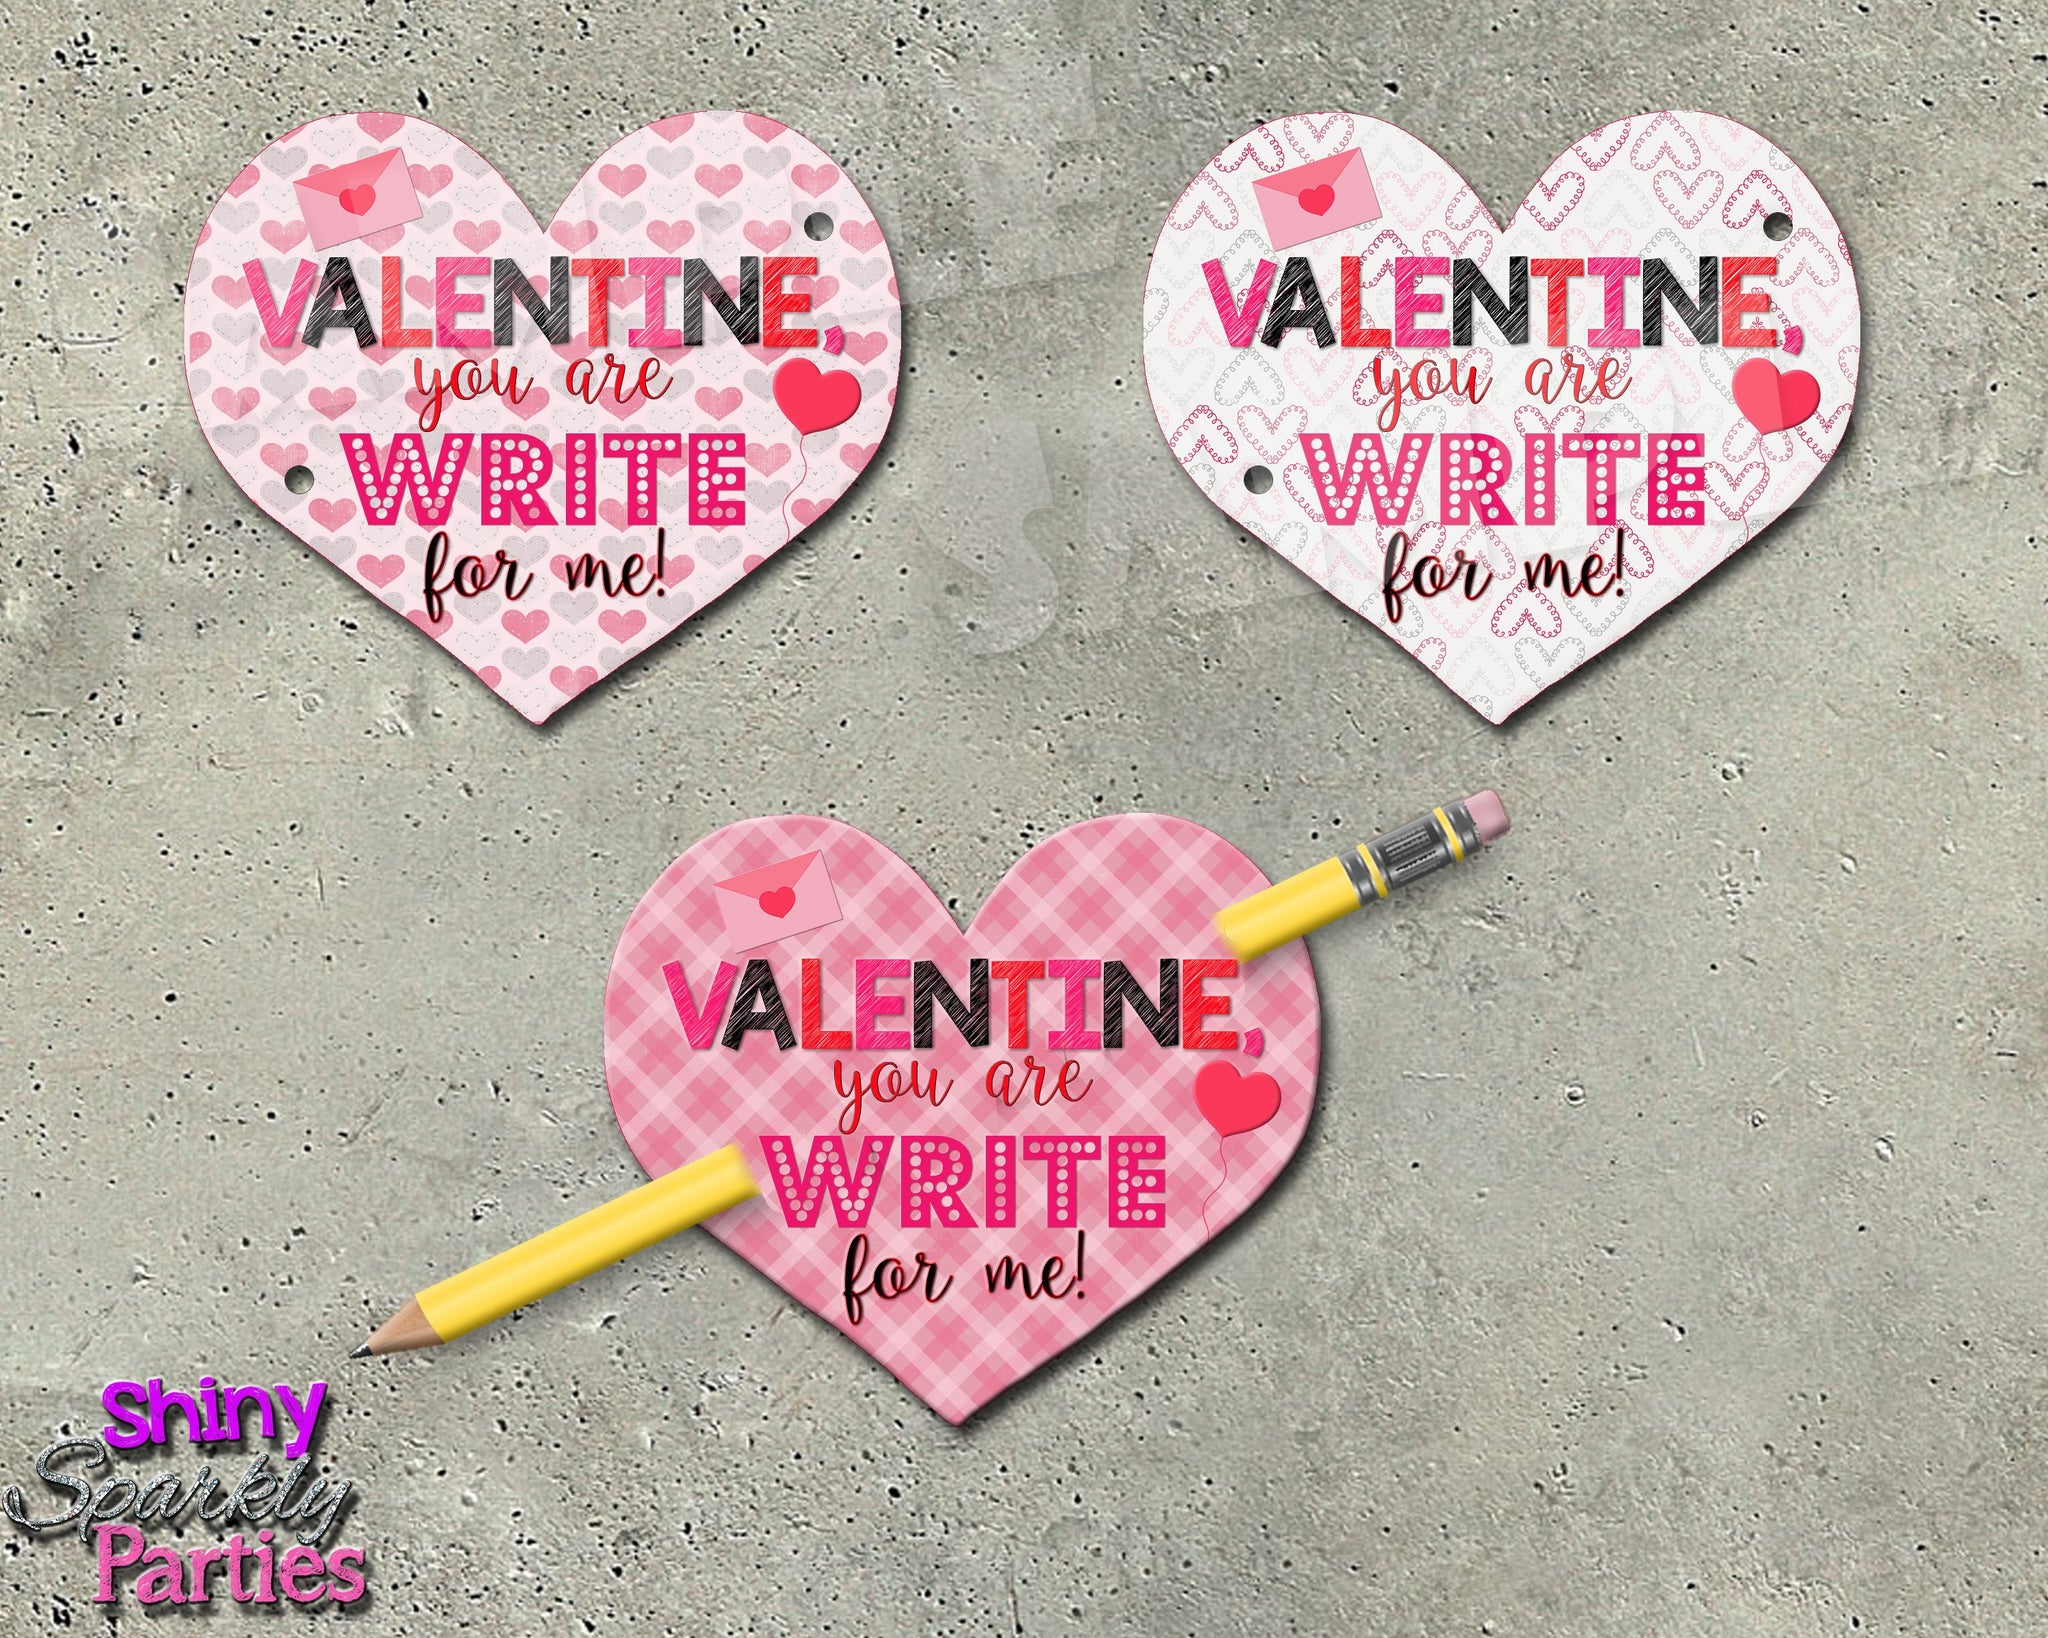 image regarding Pencil Valentine Printable named Pencil Valentines - Centre Valentines